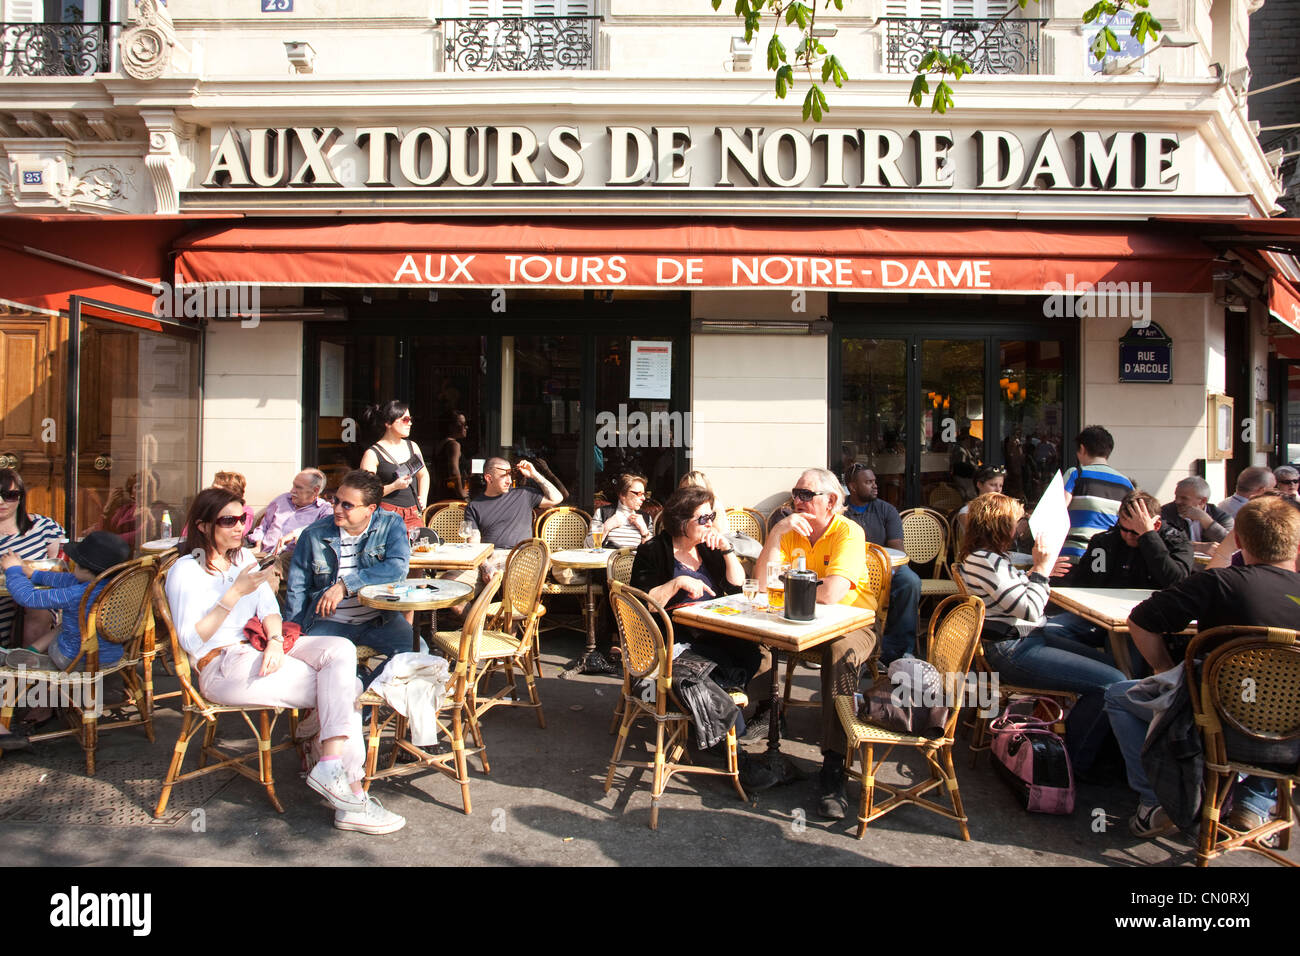 People sitting outside the Aux Tours de Notre Dame, brasserie on Rue d'Arcole, Paris, France - Stock Image